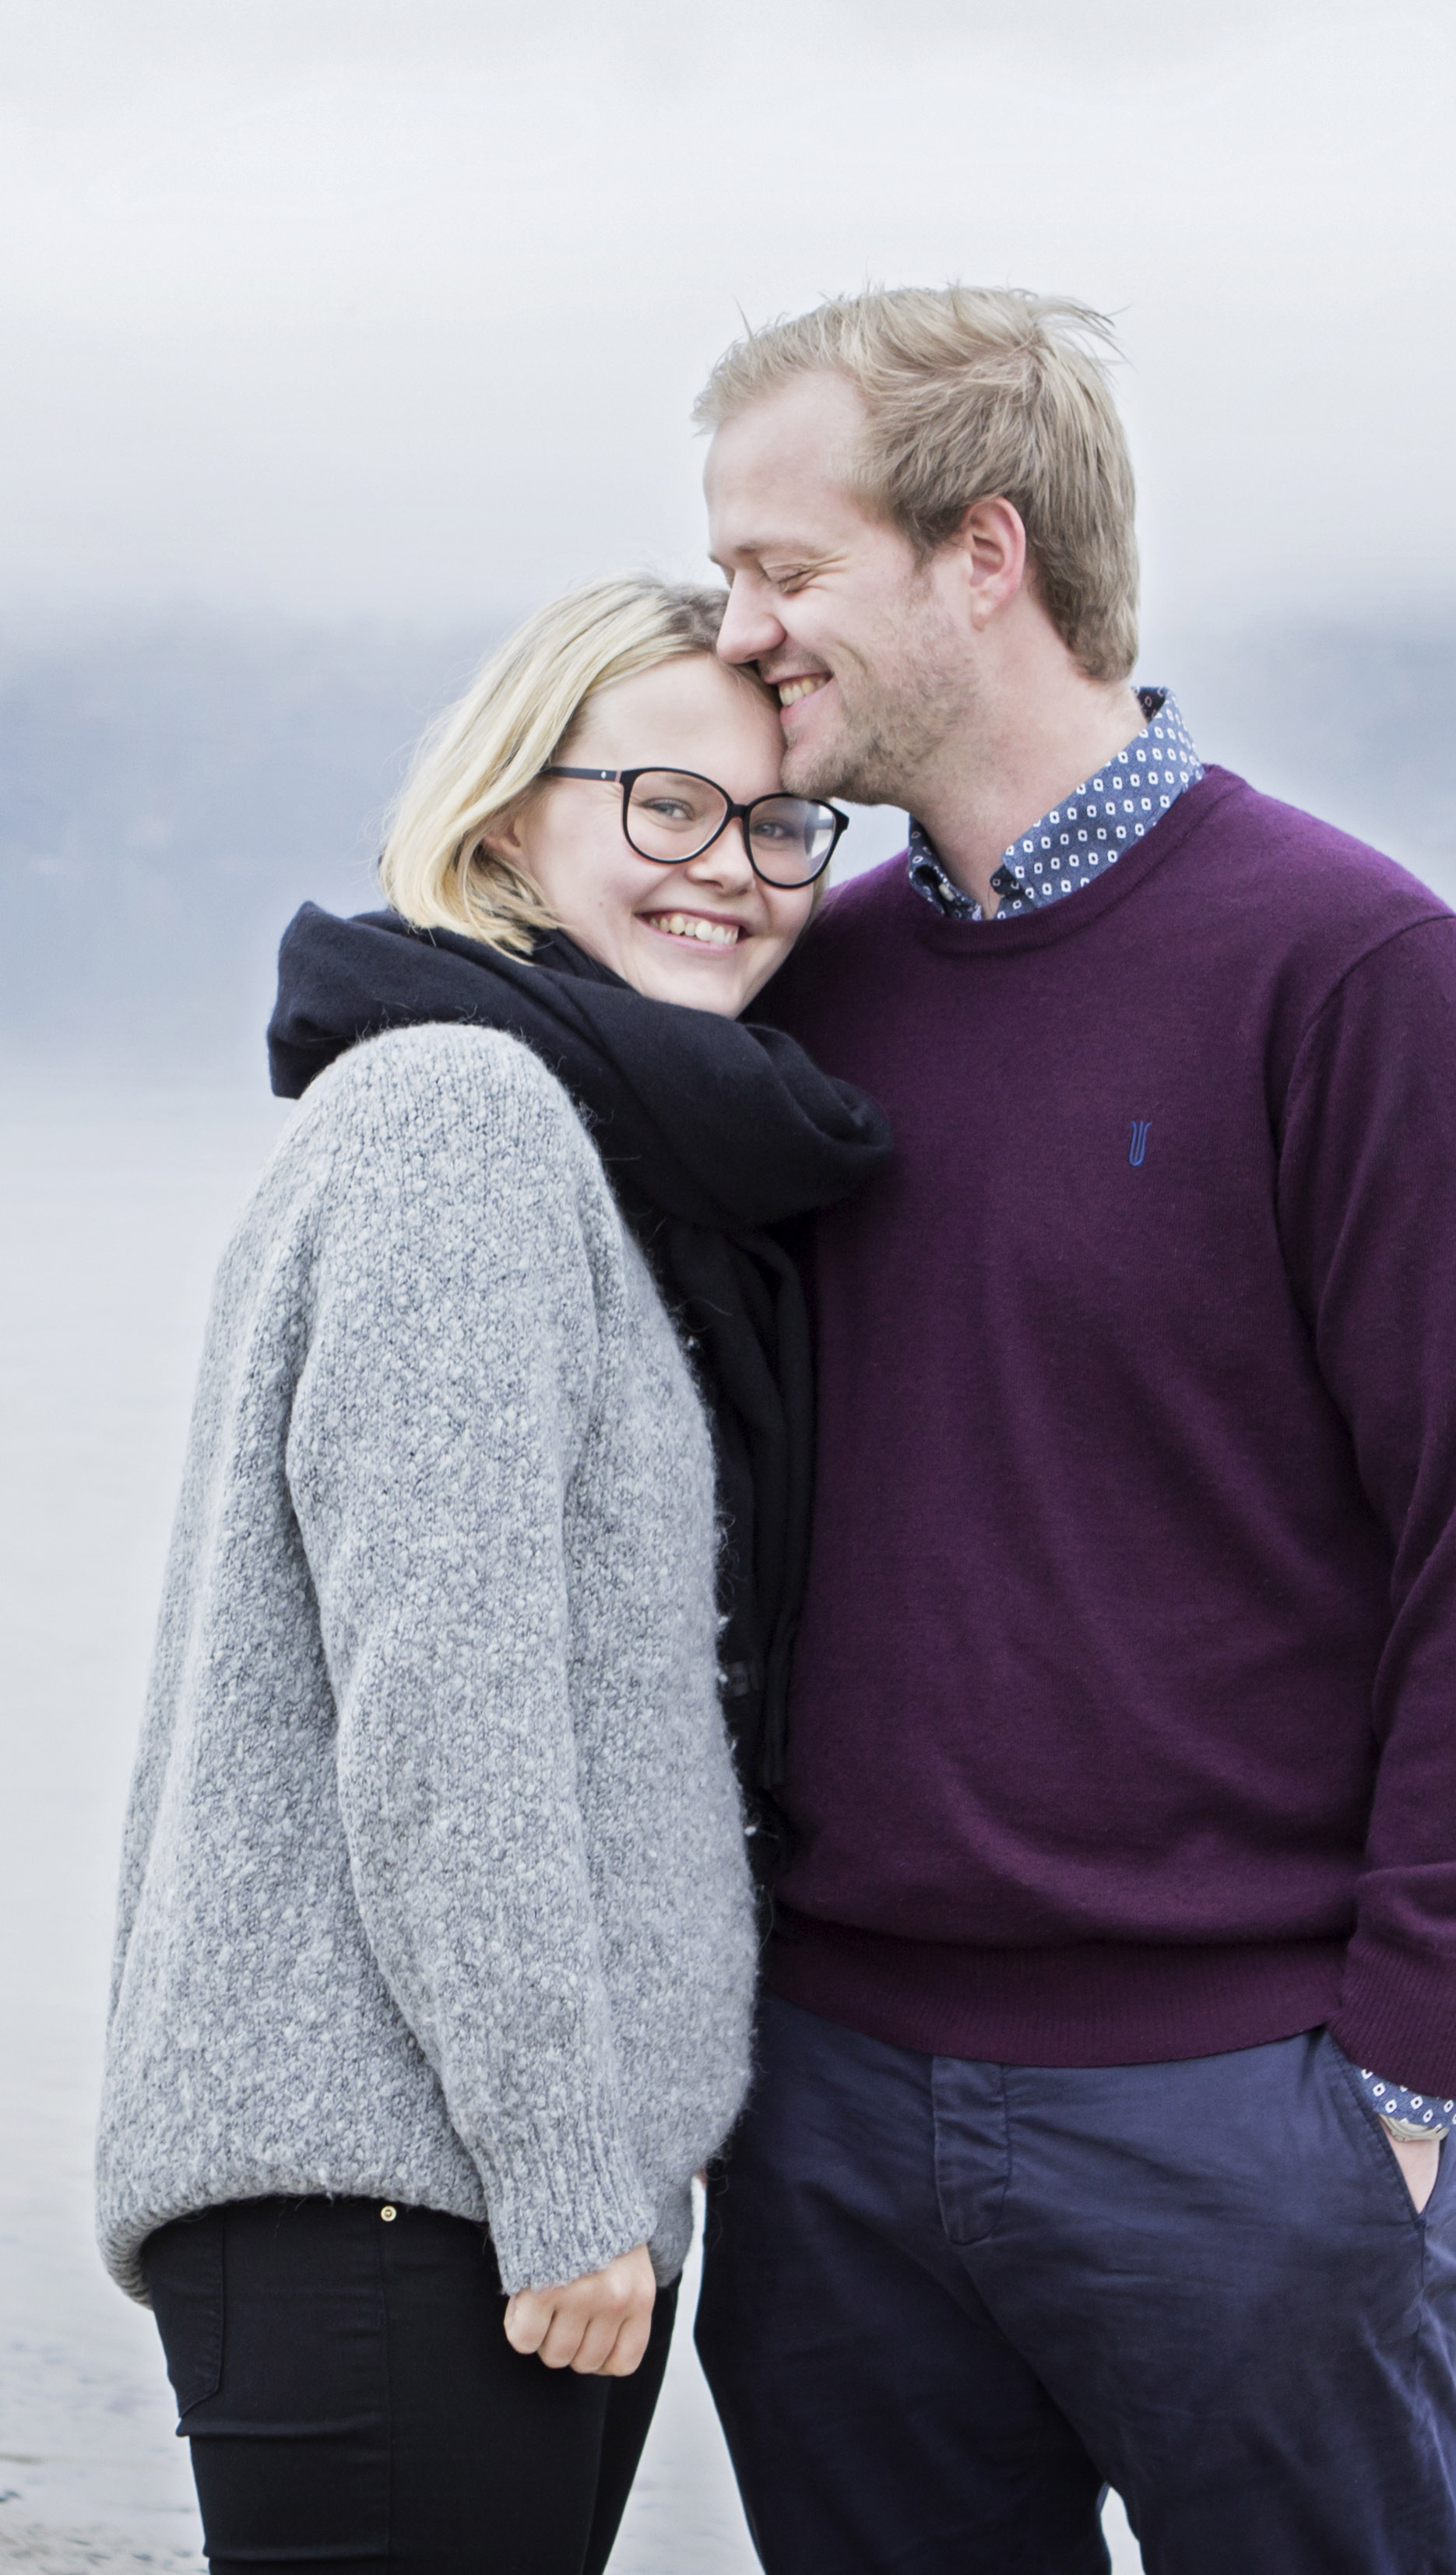 couples-happy-outdoor-photography-vejle